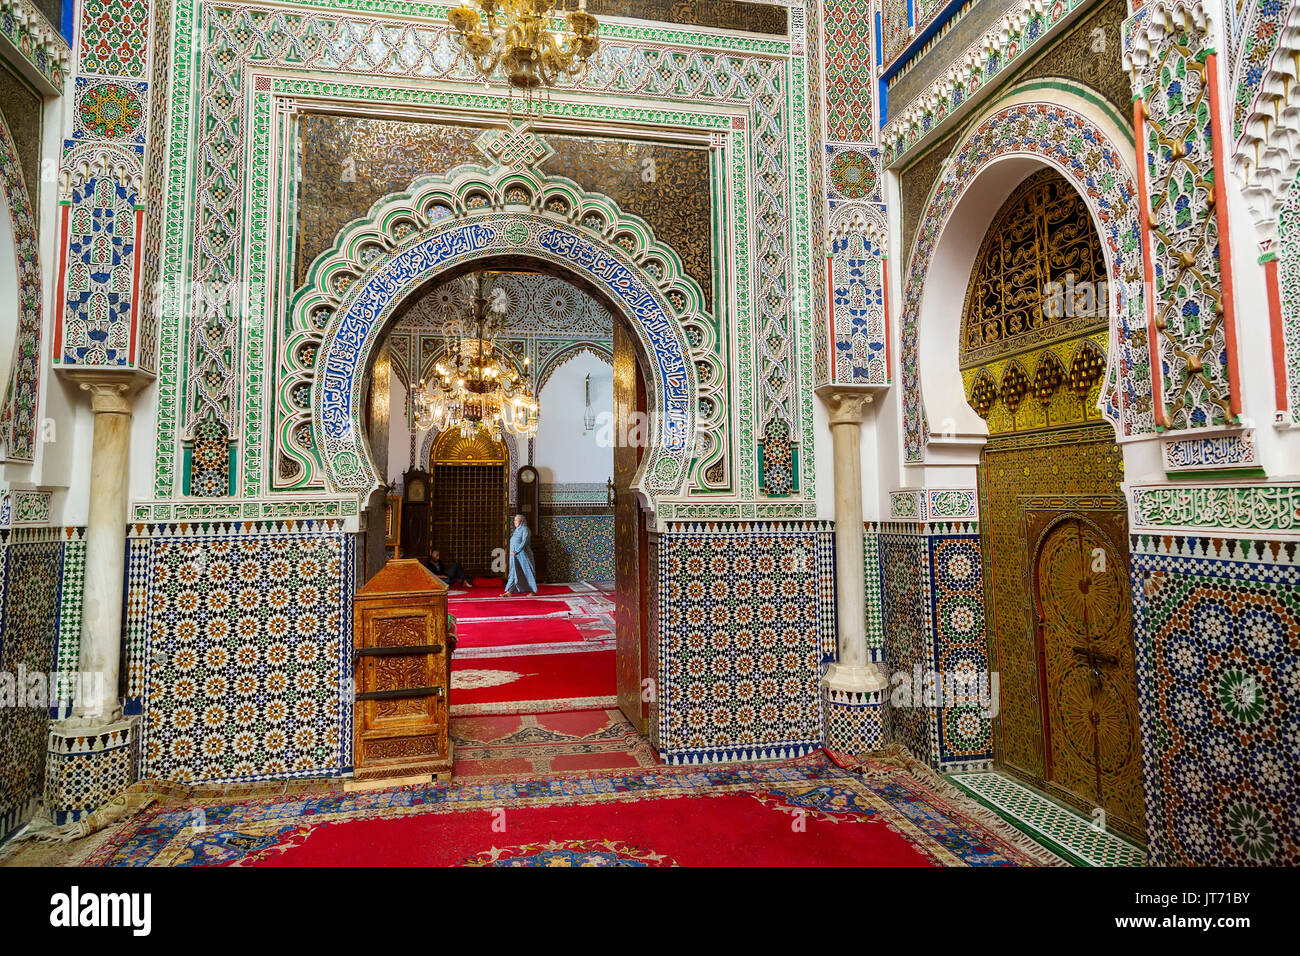 Moulay Idriss II Mosque. Souk Medina of Fez, Fes el Bali. Morocco, Maghreb North Africa - Stock Image